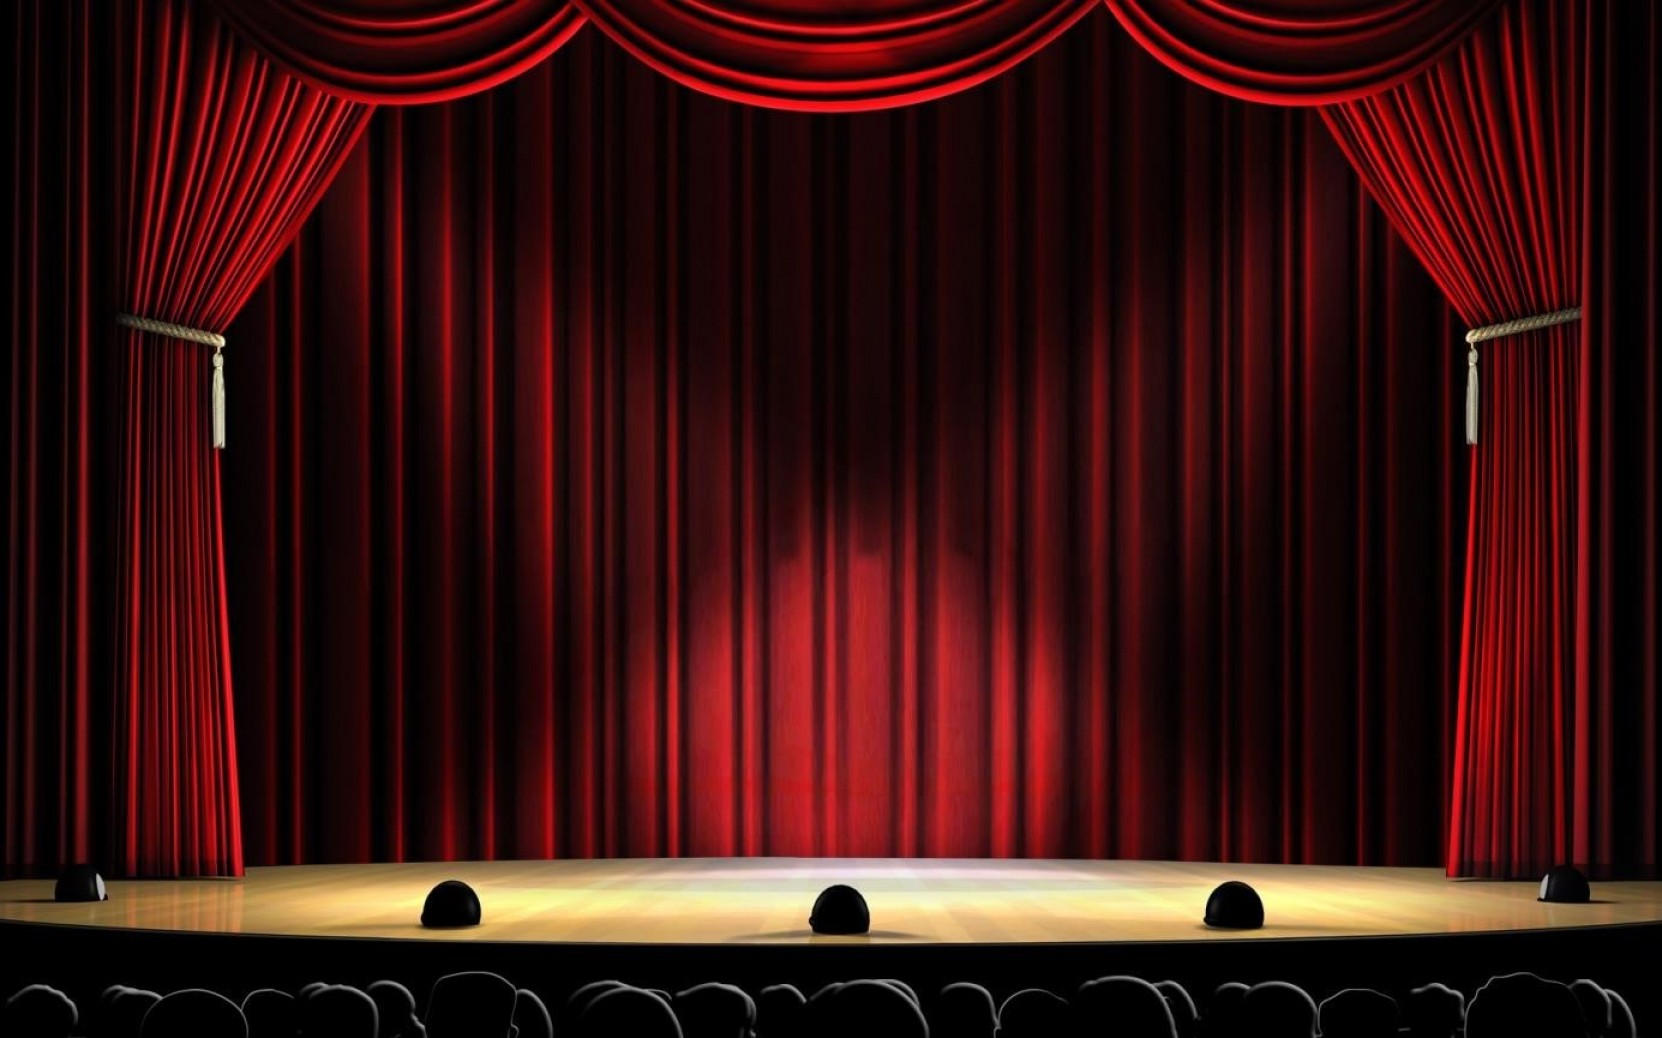 Vector Spotlight 3 Million: With Stage Curtains Spotlight Red Download Thousands Of Free Vectors On Freepik The Finder More Than A Million